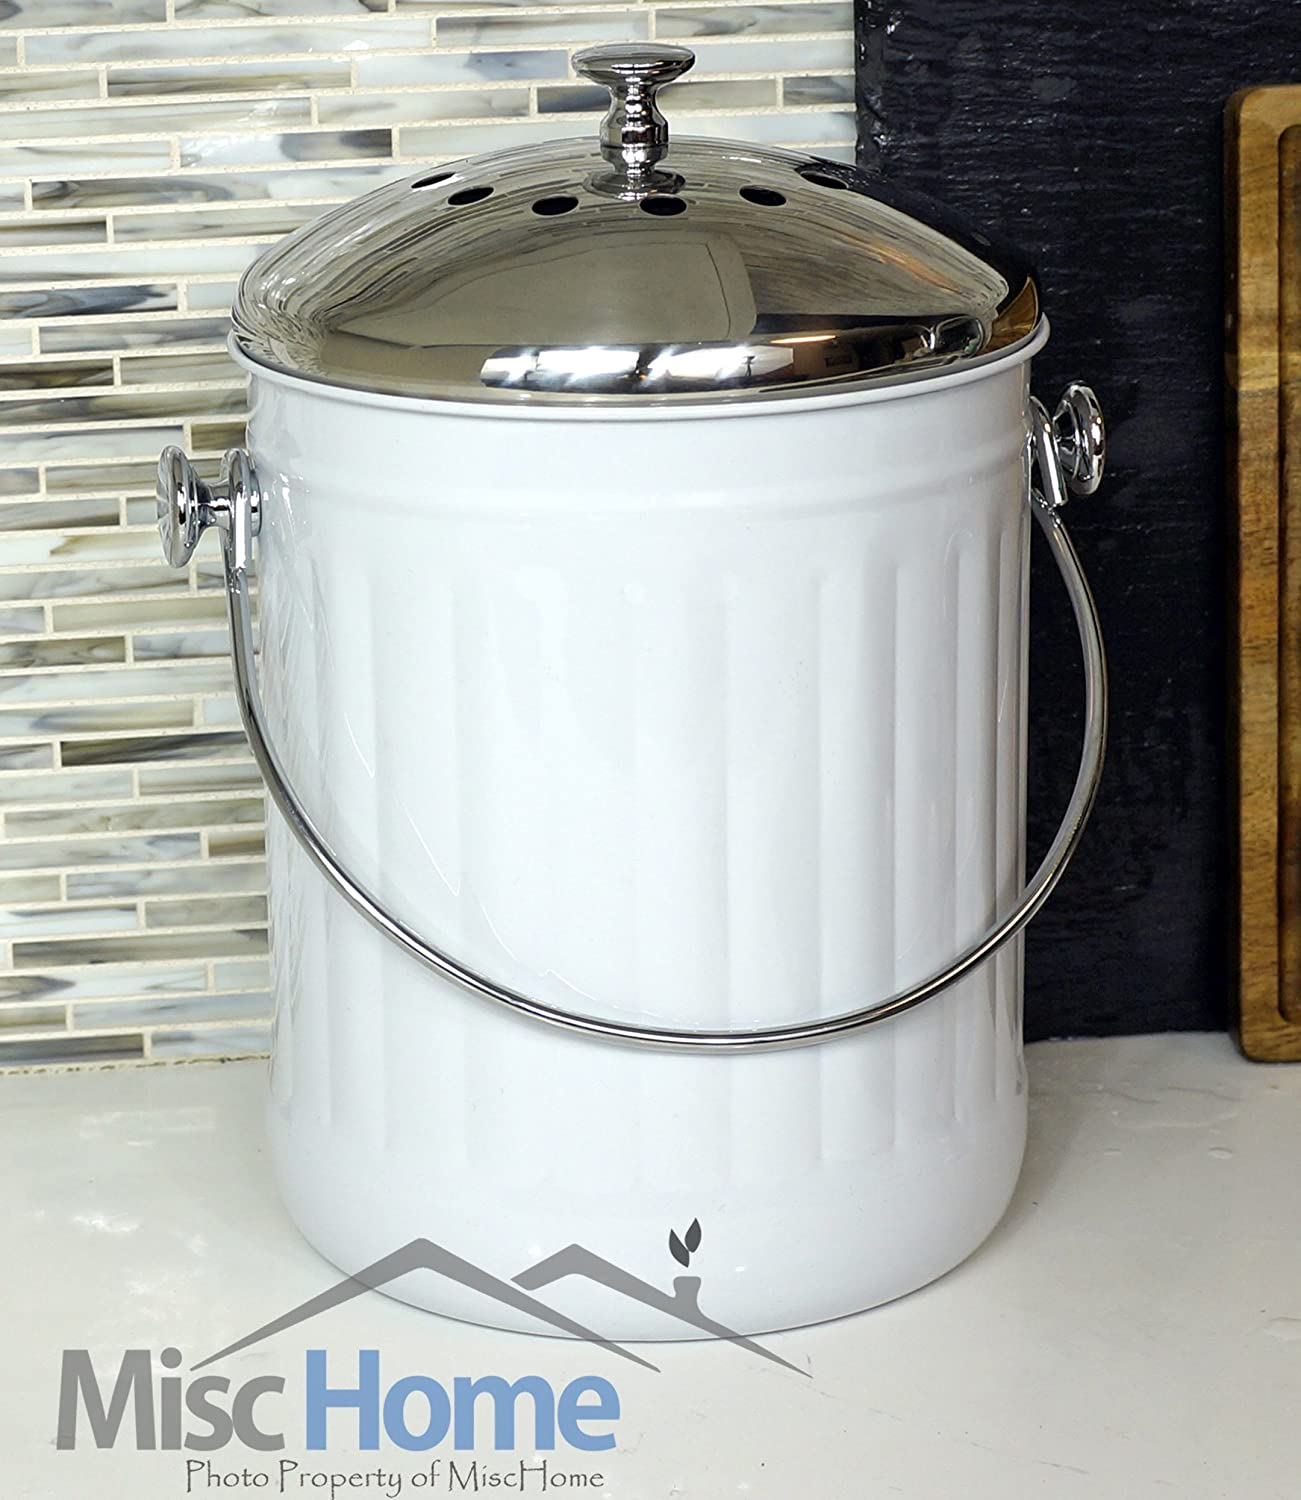 Amazon.com: Indoor Kitchen Stainless Steel Compost Bin   White   1.2 Gallon  Container With Double Charcoal Filter For Odor Absorbing   Perfect Caddy  For Any ...